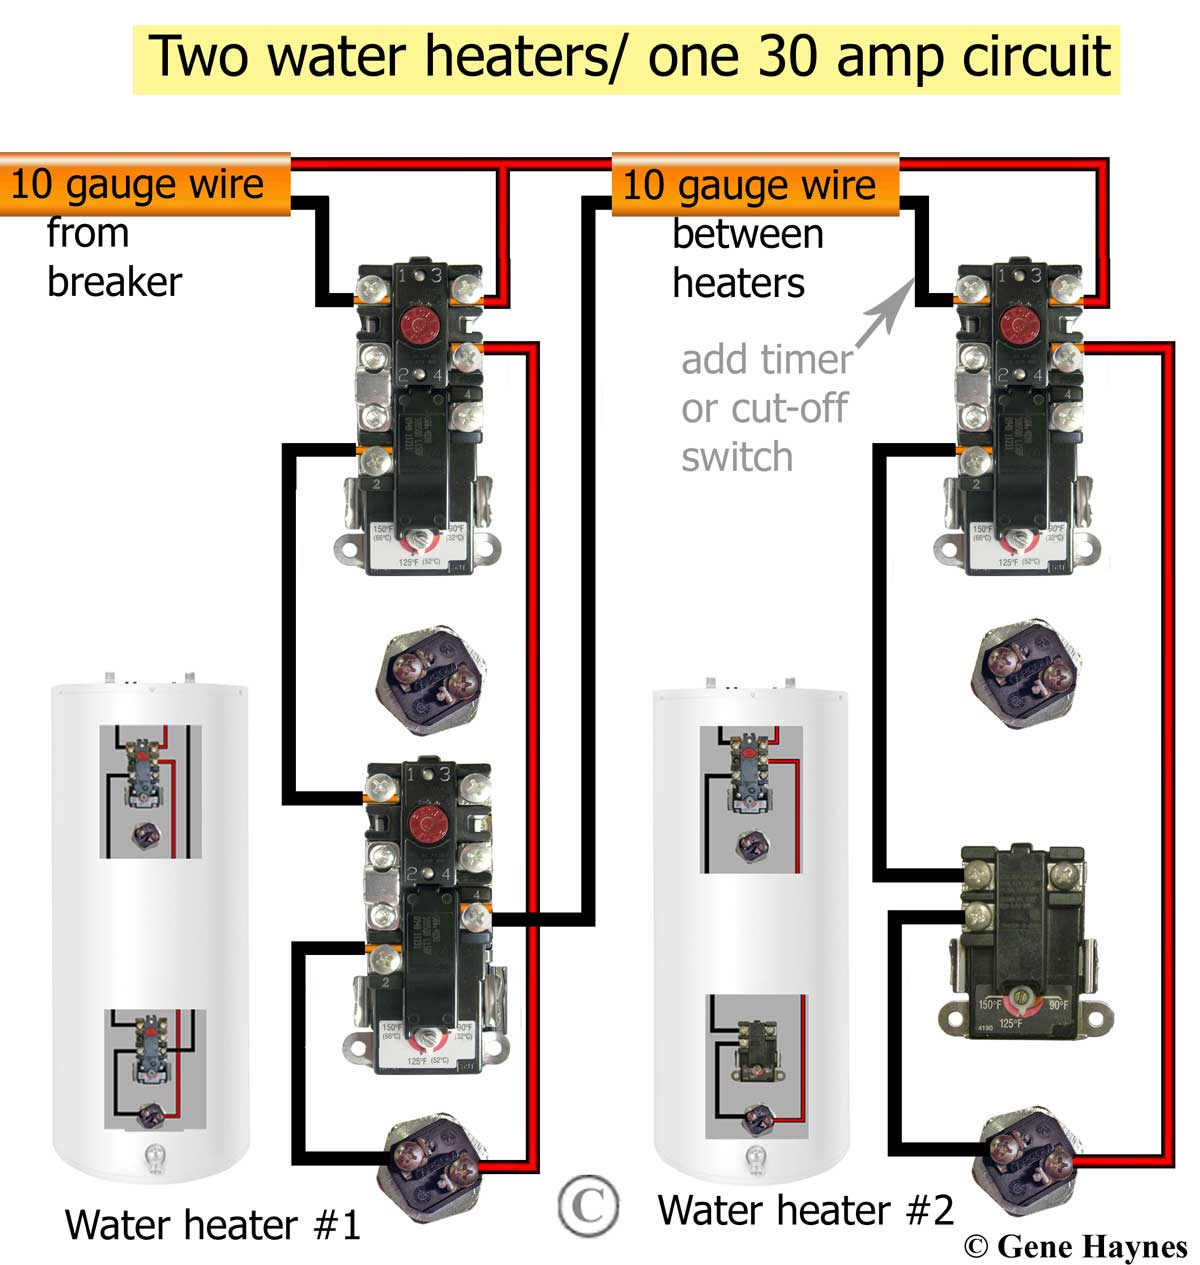 reduntant thermostats - two water heaters larger image